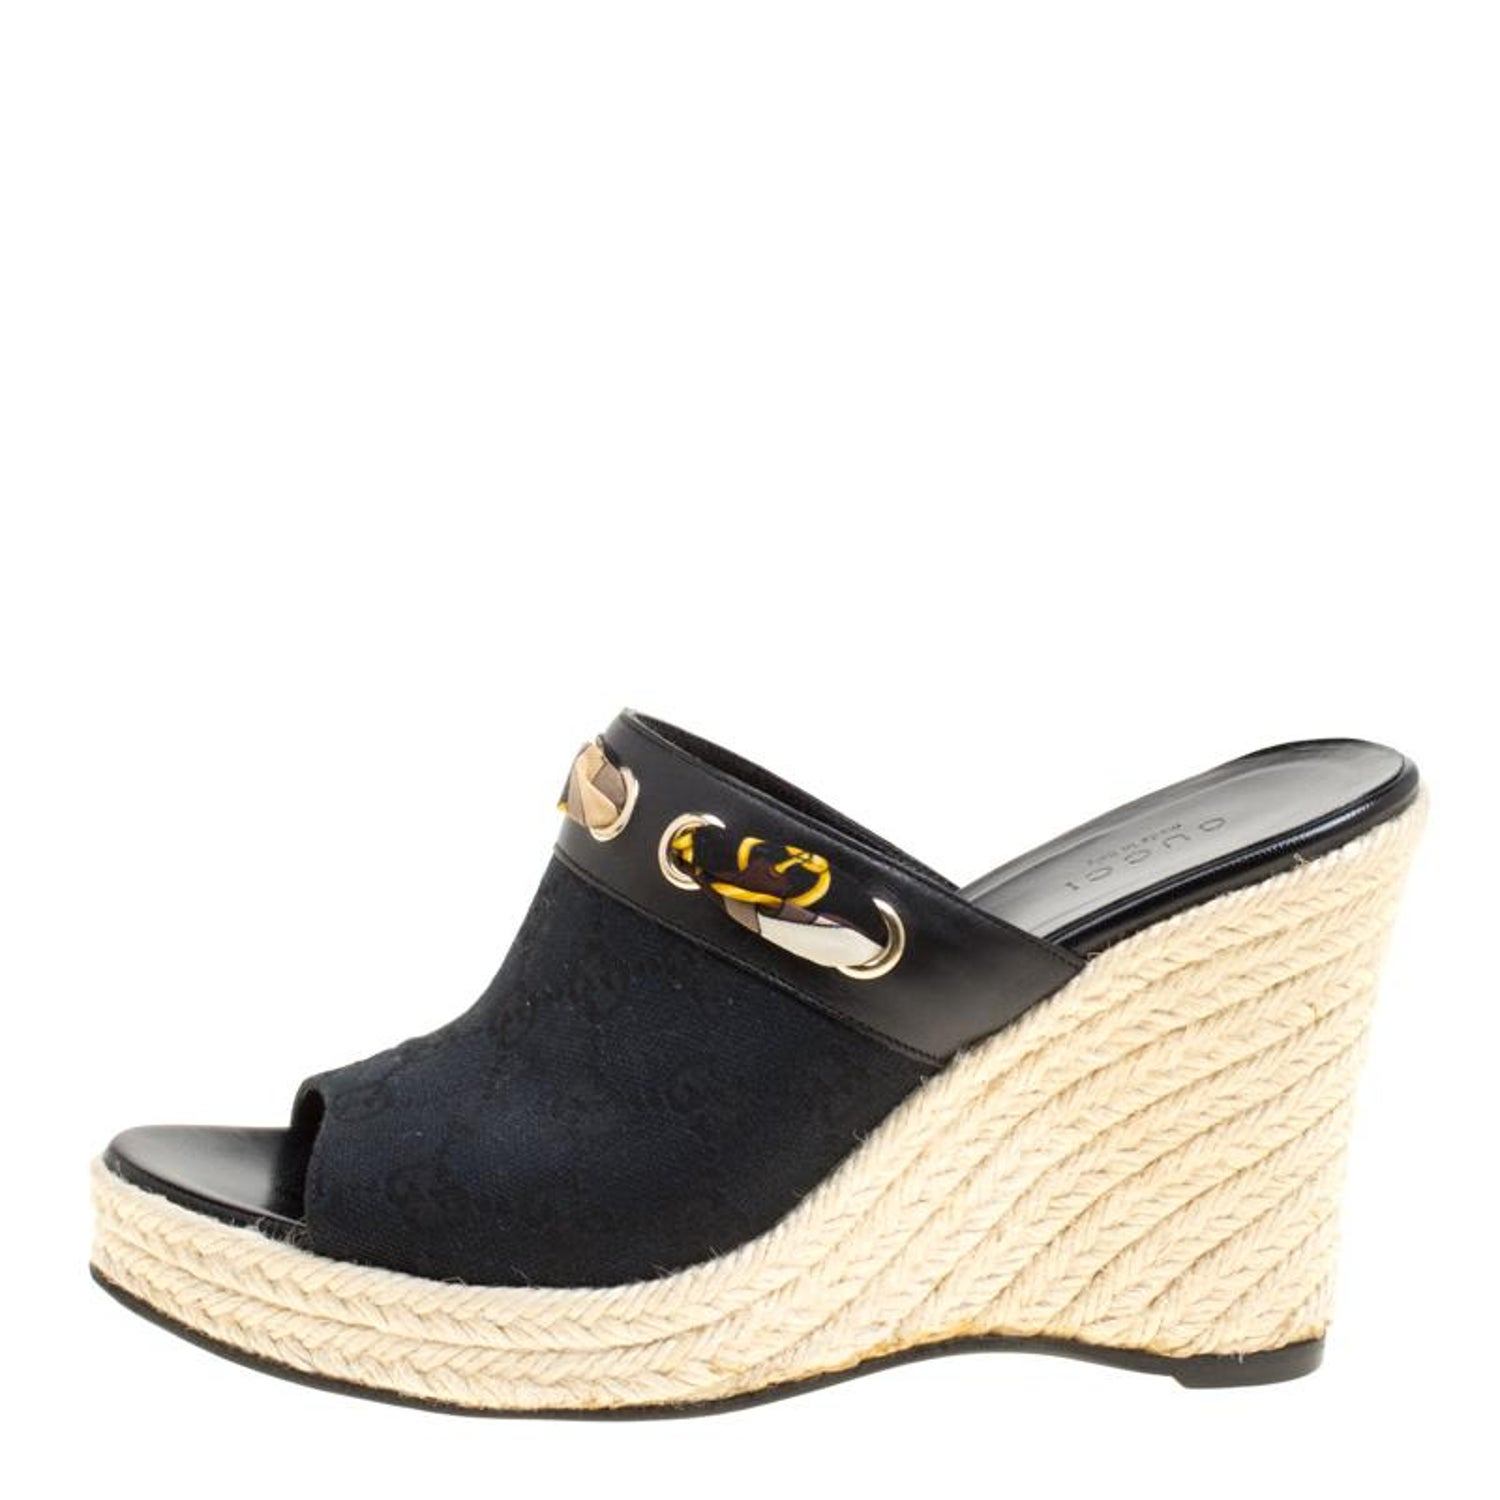 d87746cba Gucci Black GG Canvas Espadrille Wedge Peep Toe Slides Size 37 For Sale at  1stdibs